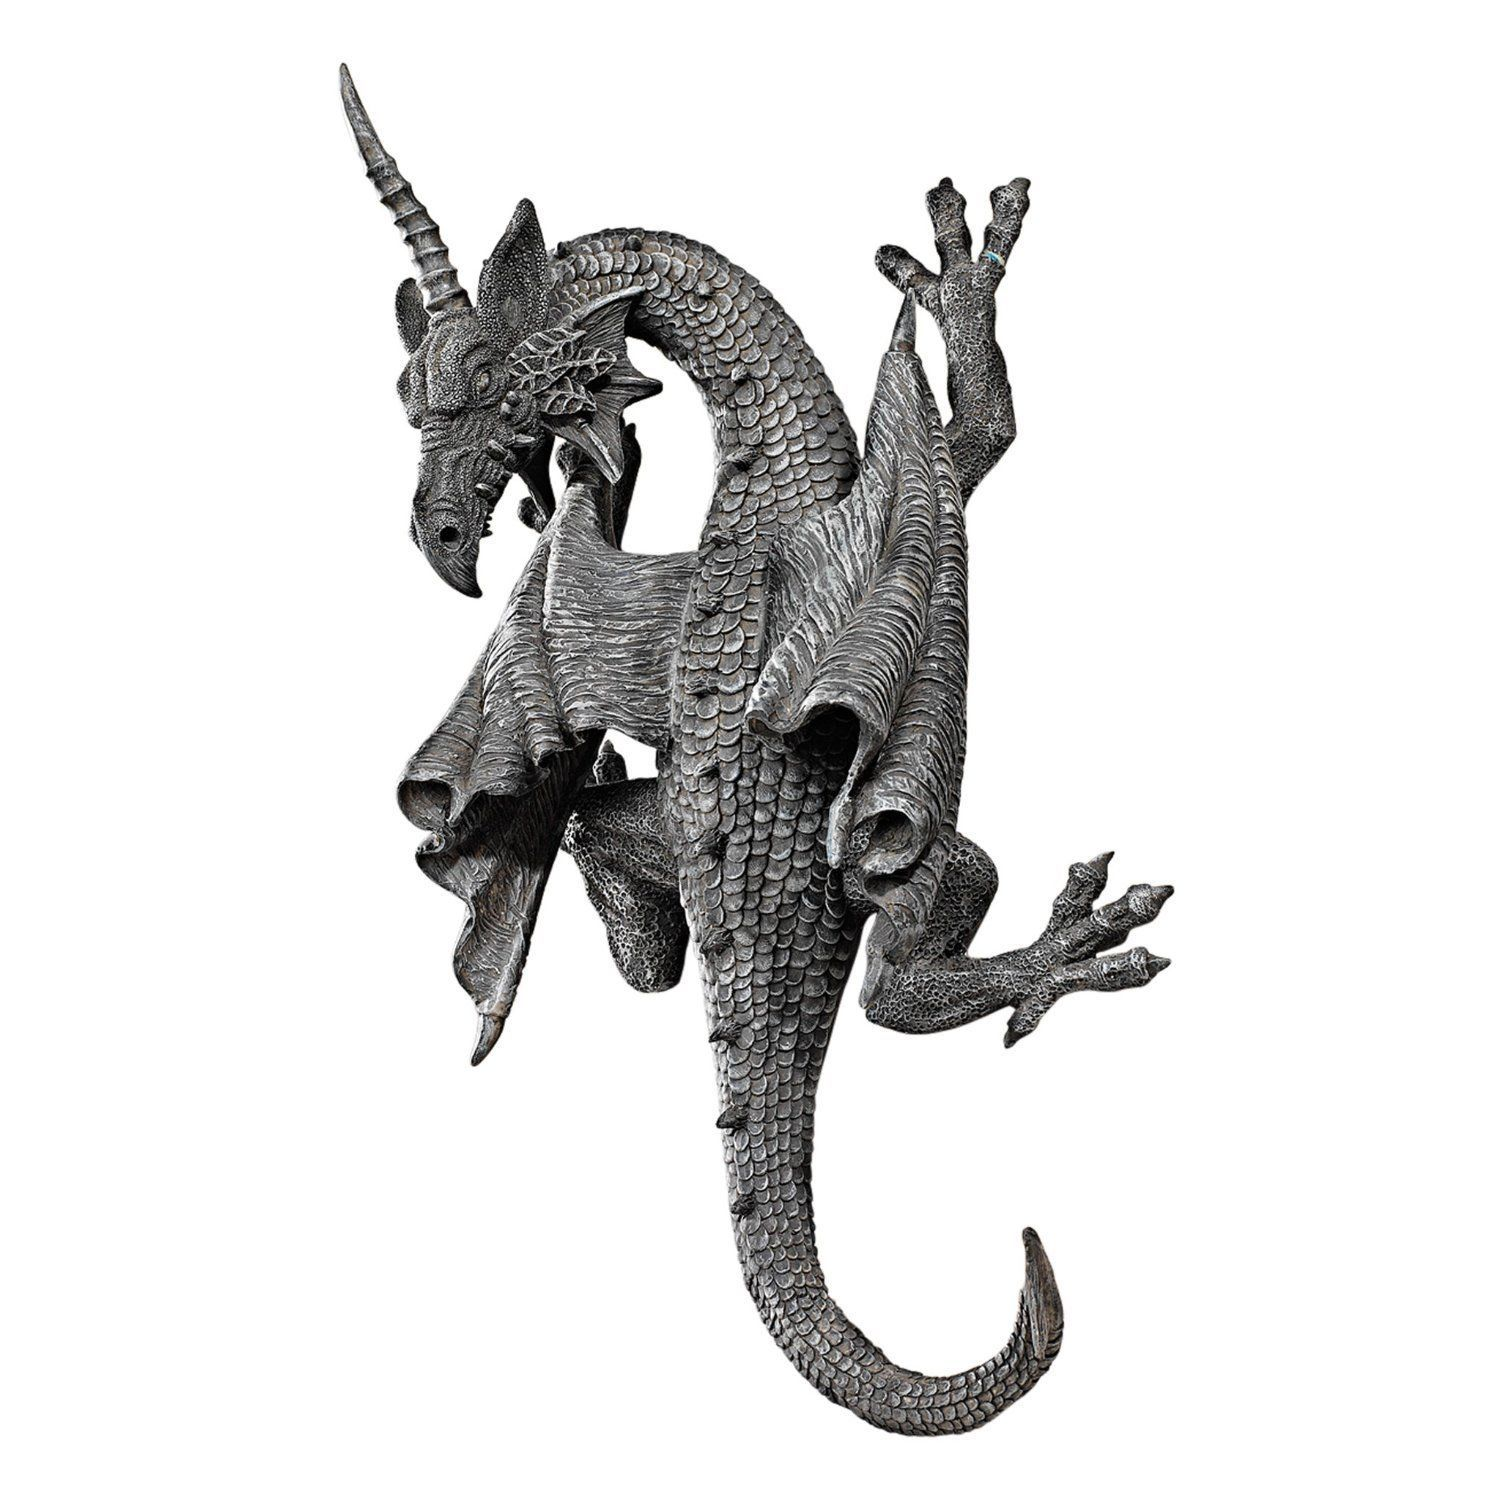 Dragon wing statue wall hanging art sculpture medieval gothic